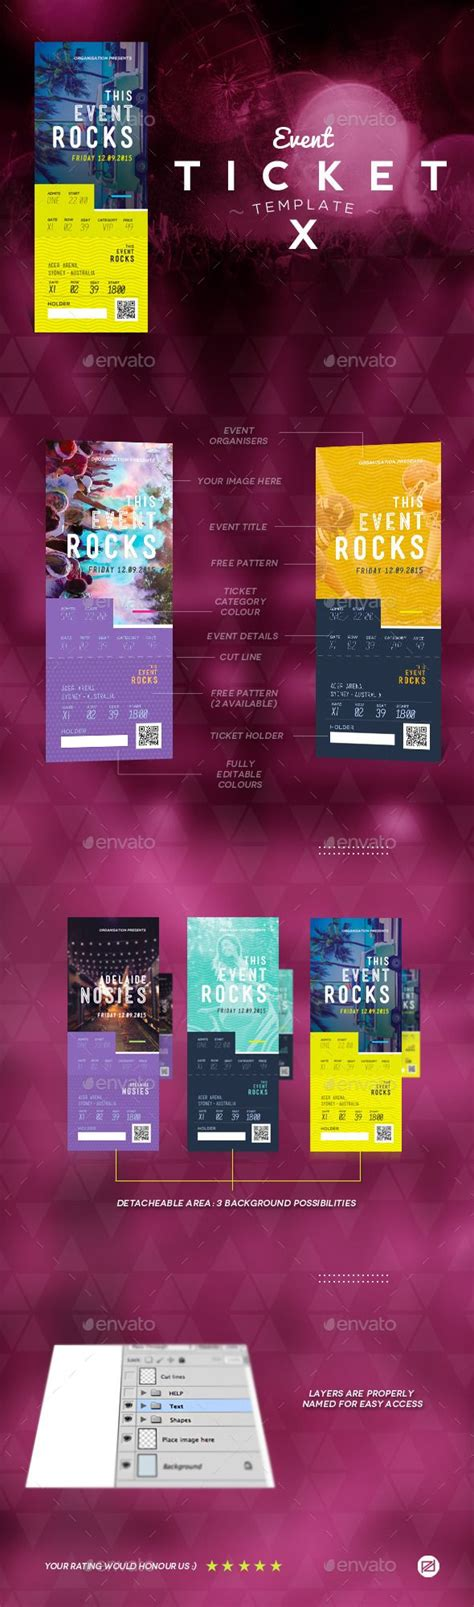 event tickets templates 216 best ticket templates images on